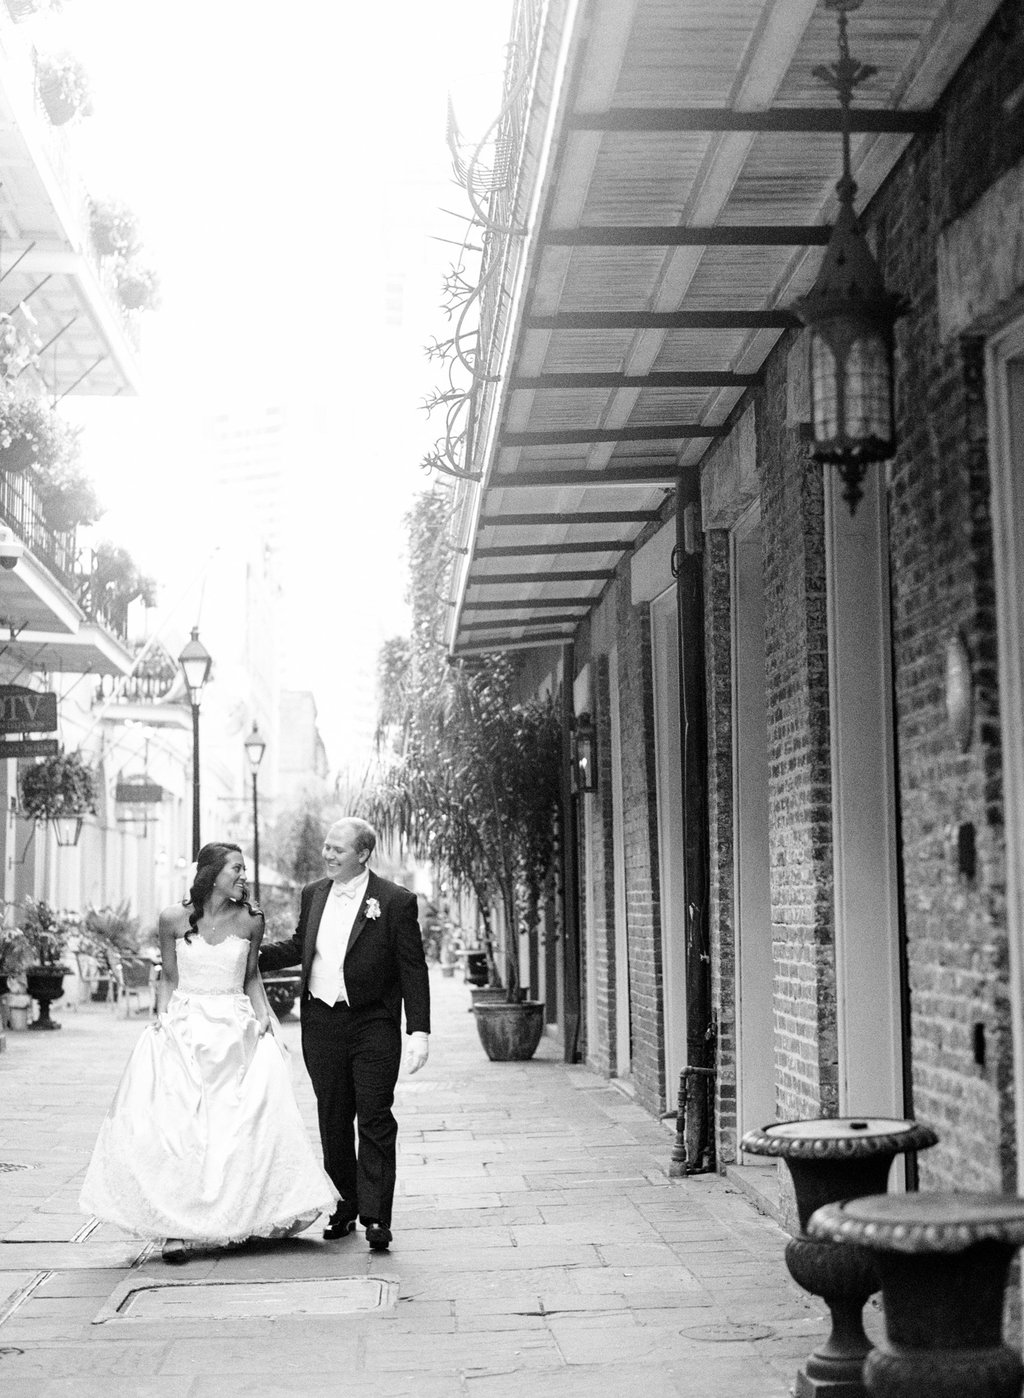 Wedding Planning | New Orleans Wedding | French Quarter Wedding | Sapphire Events | Ryan Ray Photography | White and Green Wedding | Formal Black Tie Wedding | Monique Lhuillier Dress | tux with tails | black tie wedding | architecture | french quarter | bridal portrait